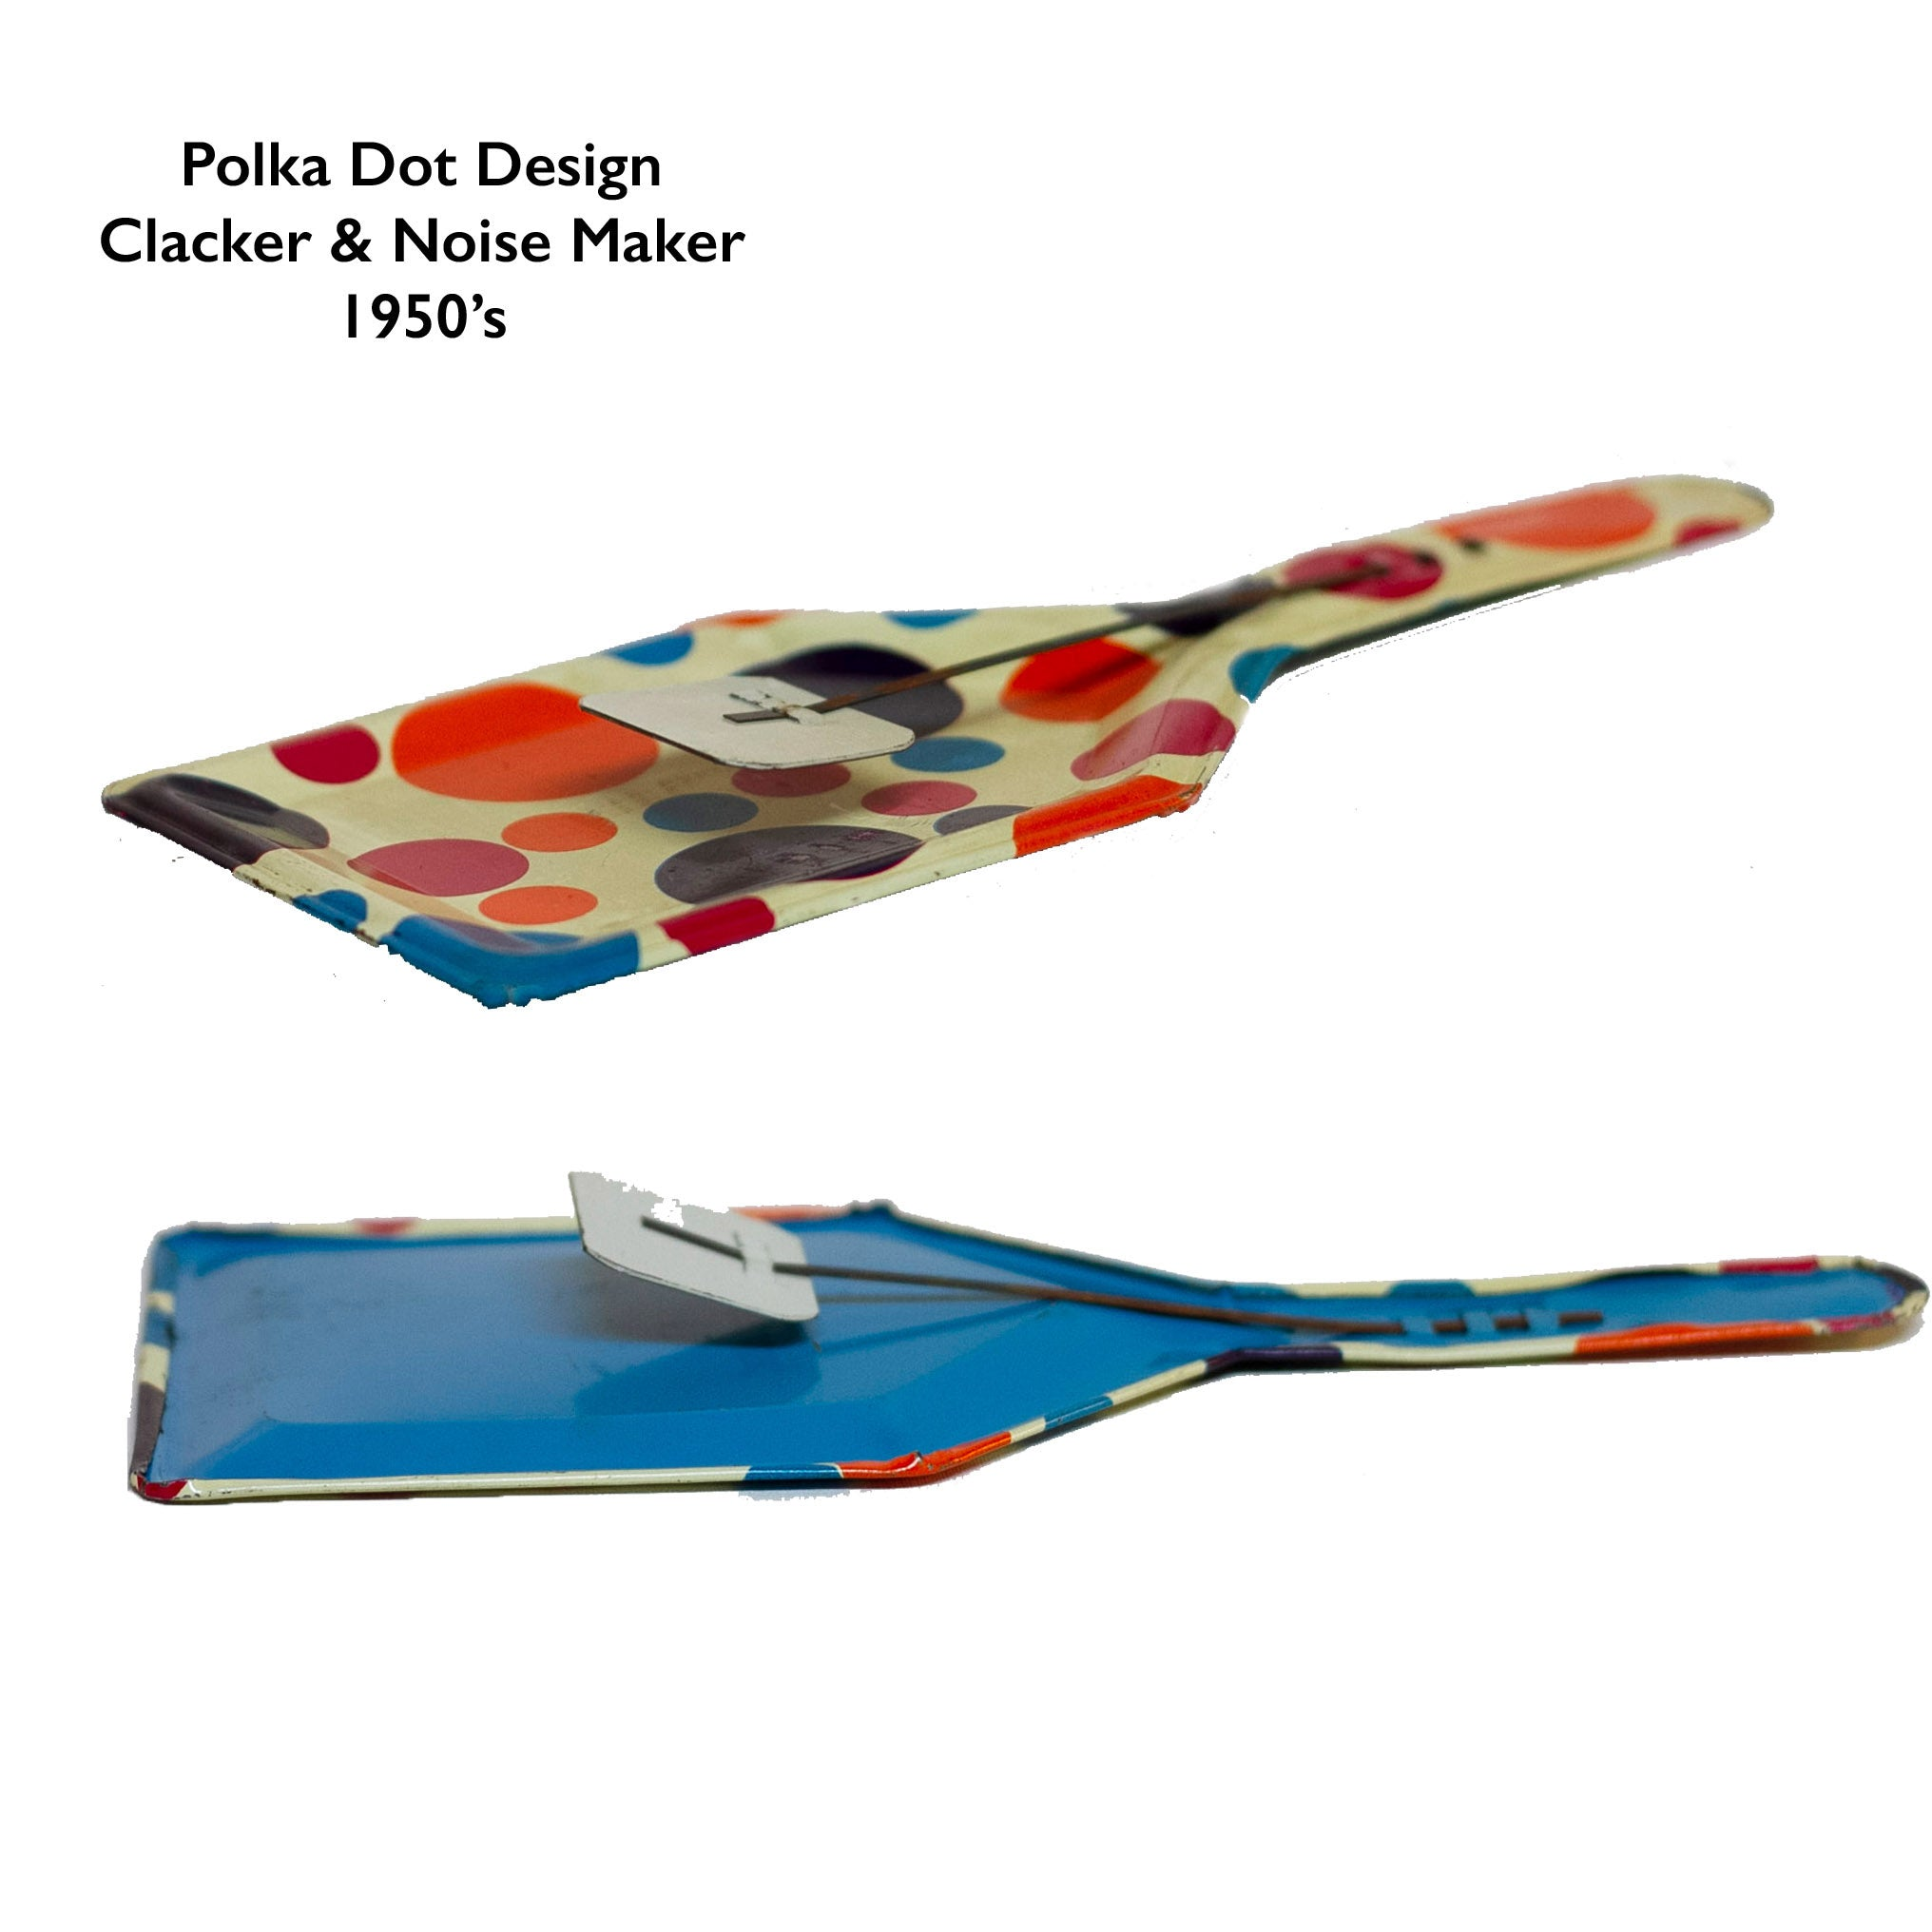 TIN-LITHOGRAPH POLKA DOT CLACKER 1950s NOISEMAKER. The lithograph on the shovel shaped noisemaker is filled with red, orange, purple, and blue polka dots. Appears to be a style that was part of a Party Time set made by the U.S. Metal Toy Manufacturing Company of Brooklyn, New York, but the lithograph is not marked.